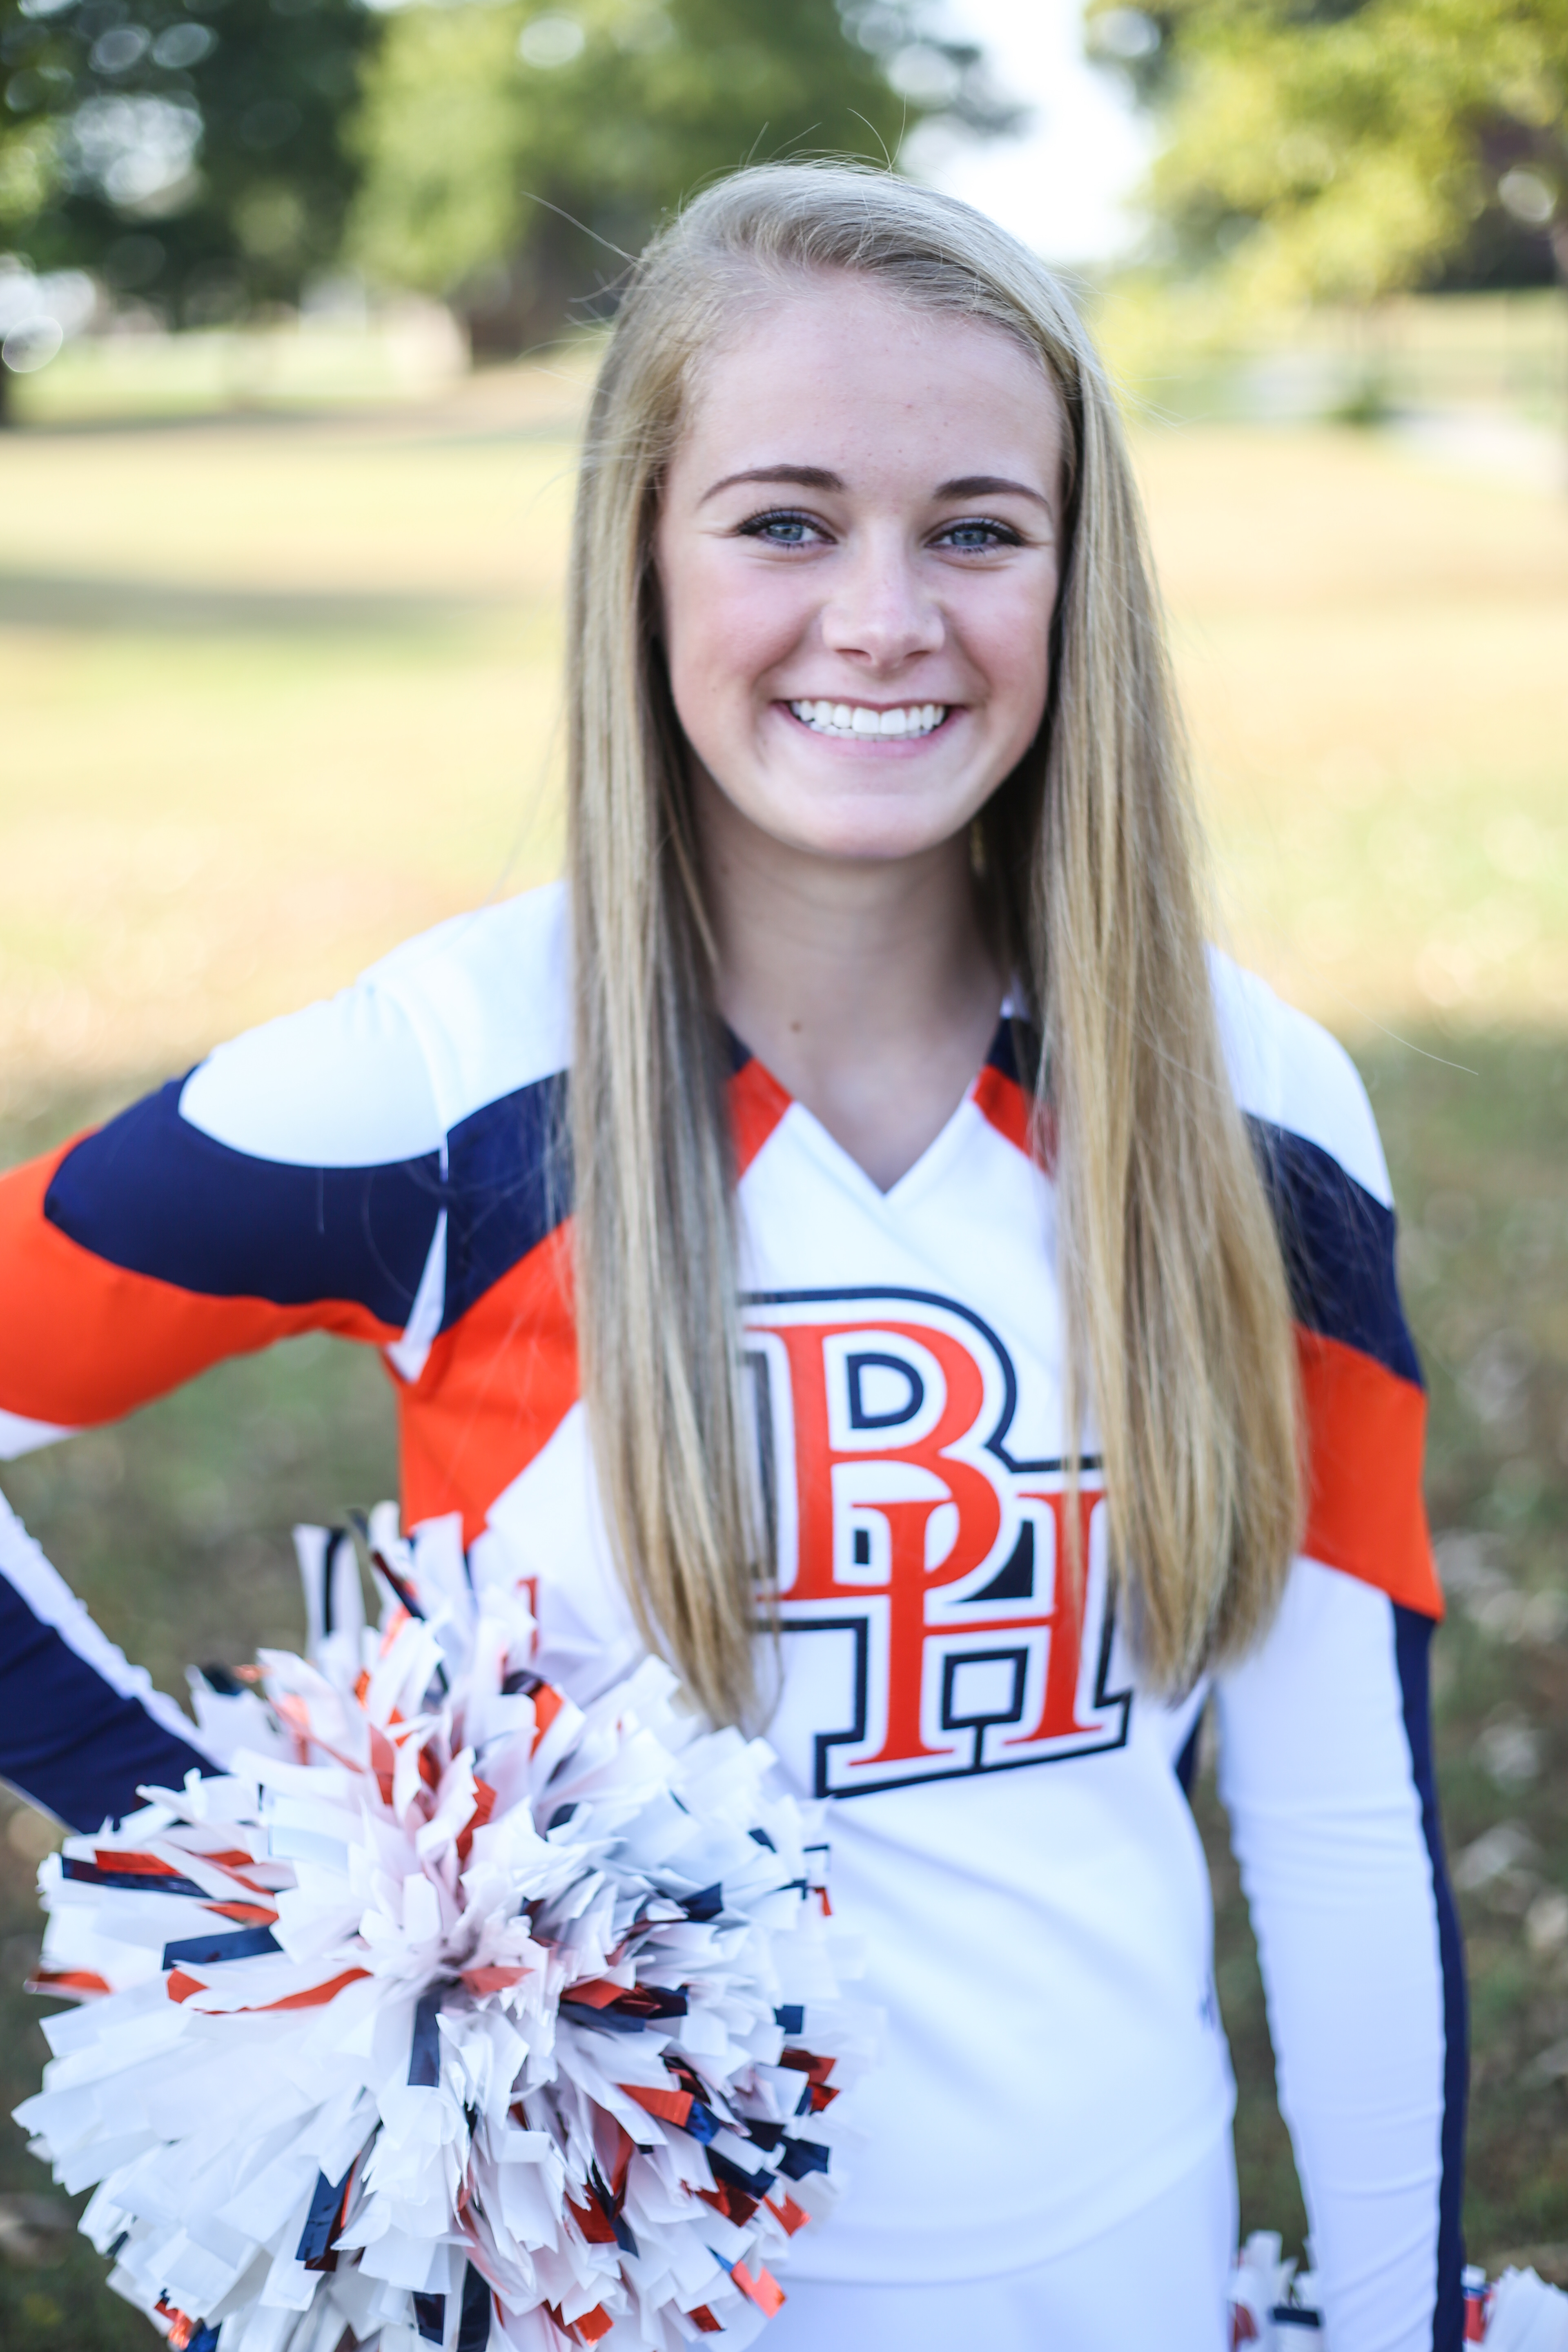 Cheer And Football Portraits